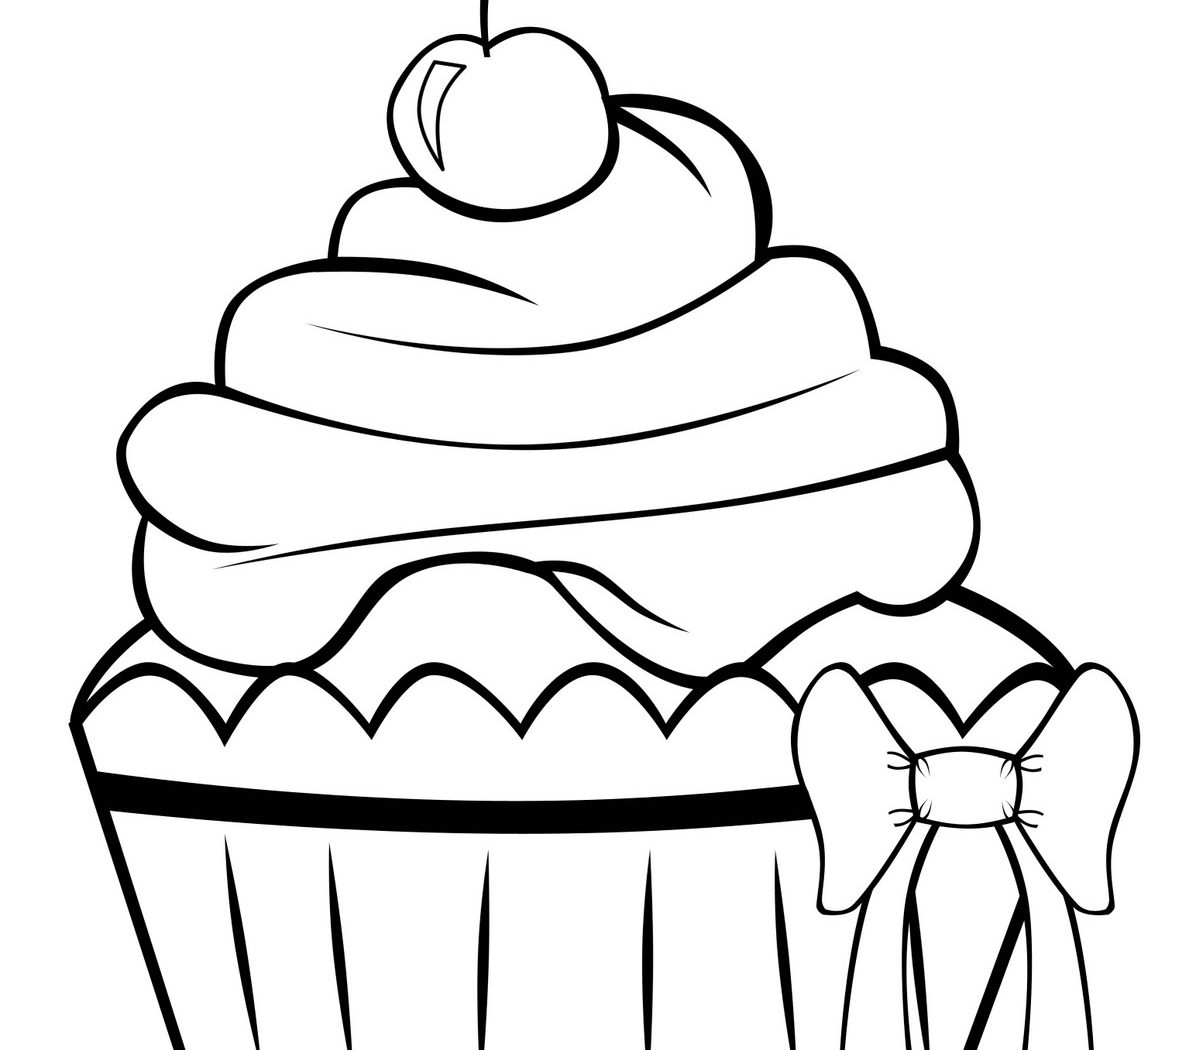 1196x1050 Beautiful Cupcake Coloring Page For Your Kids Free Printable